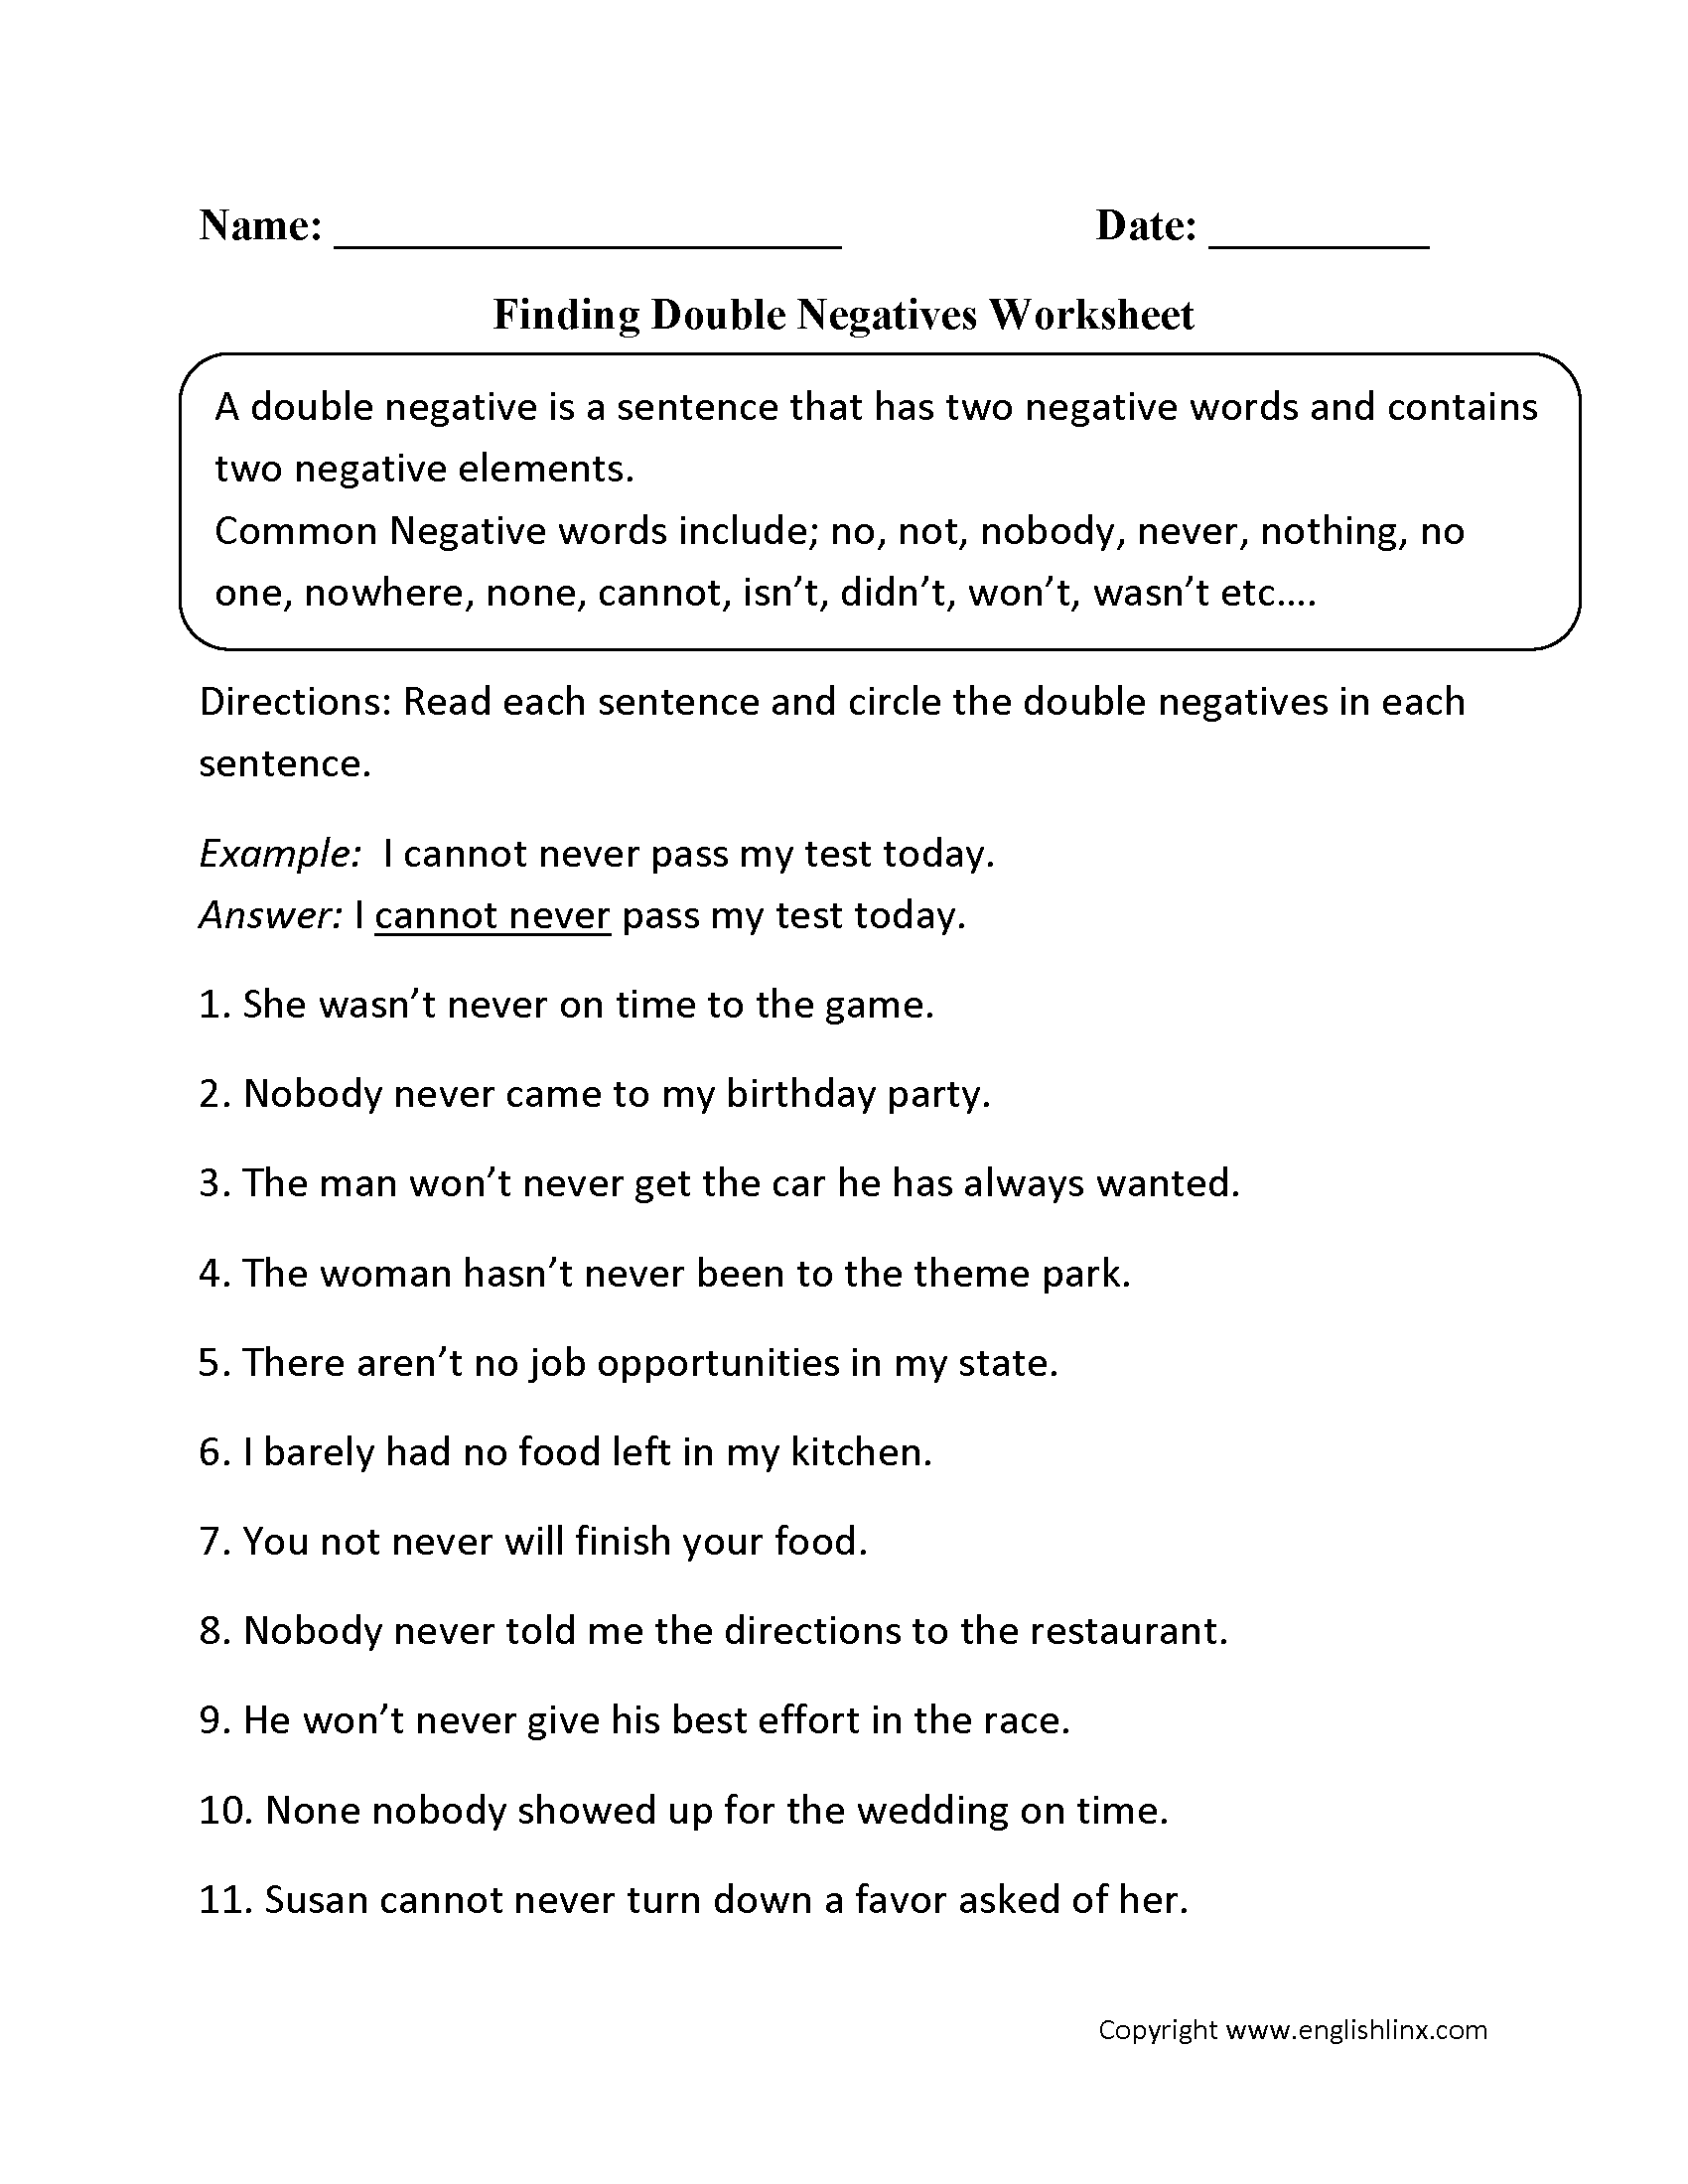 Finding Double Negatives Worksheet